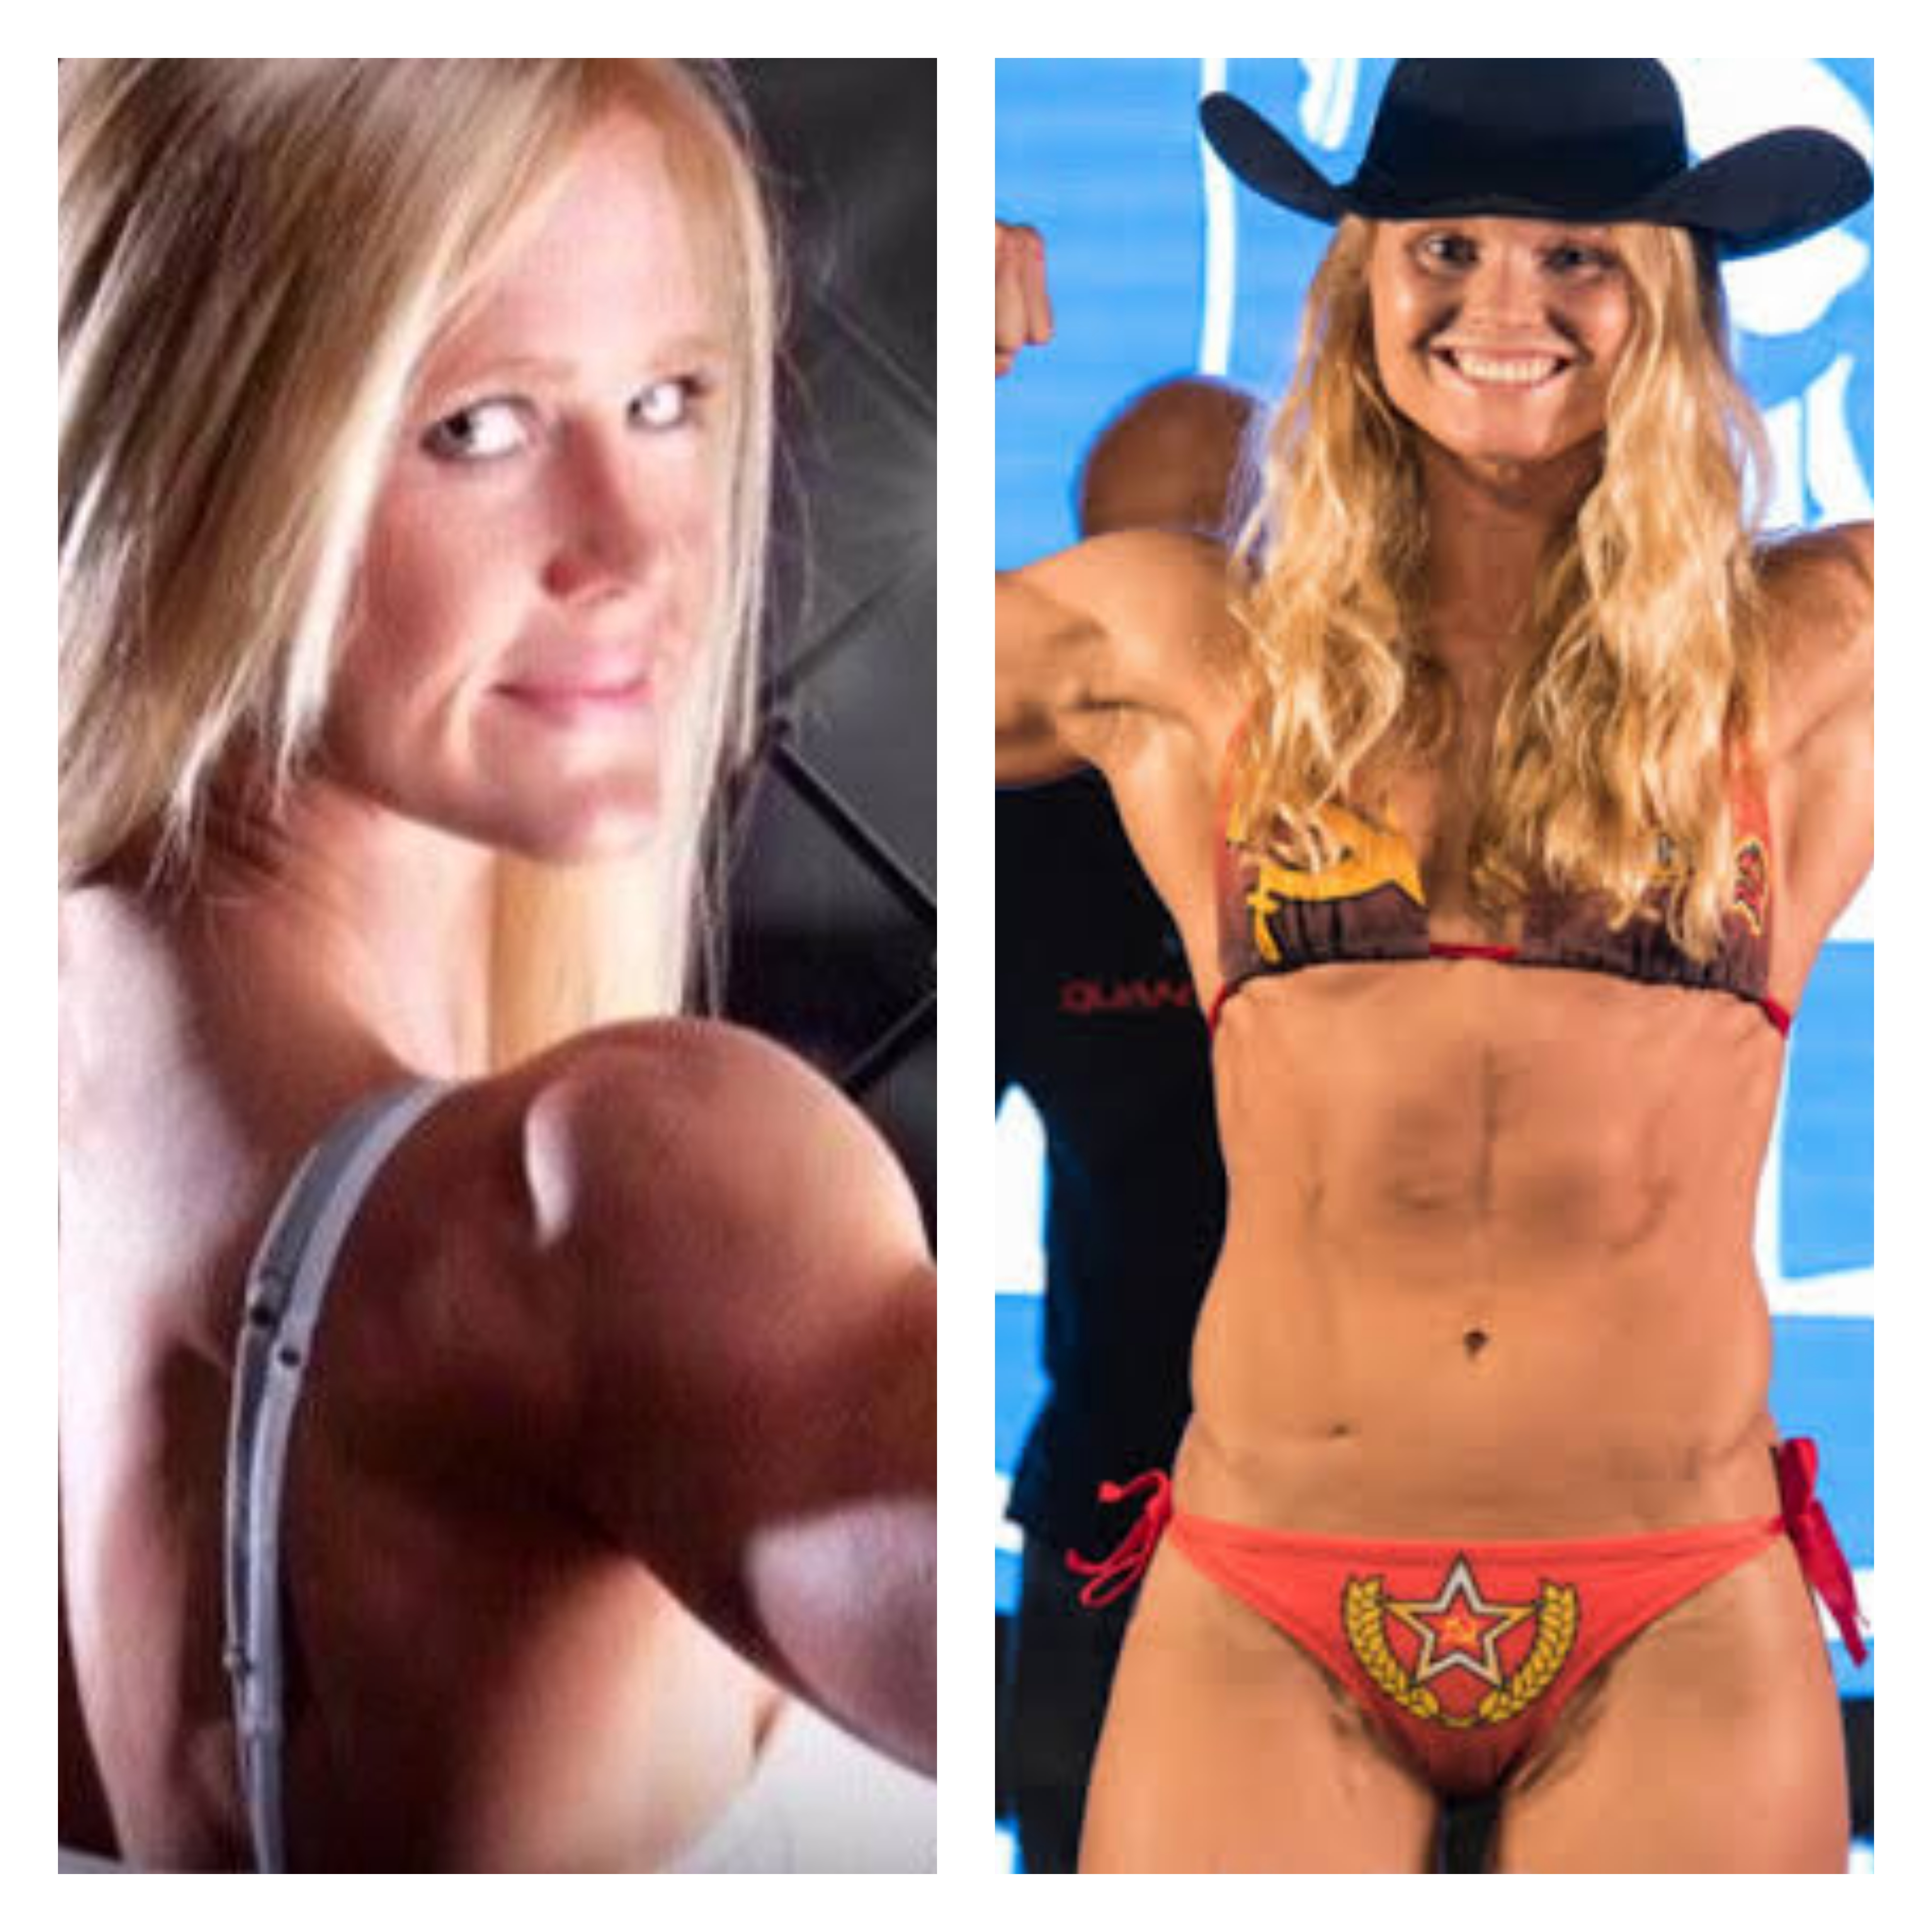 Holly Holm and Aspen Ladd